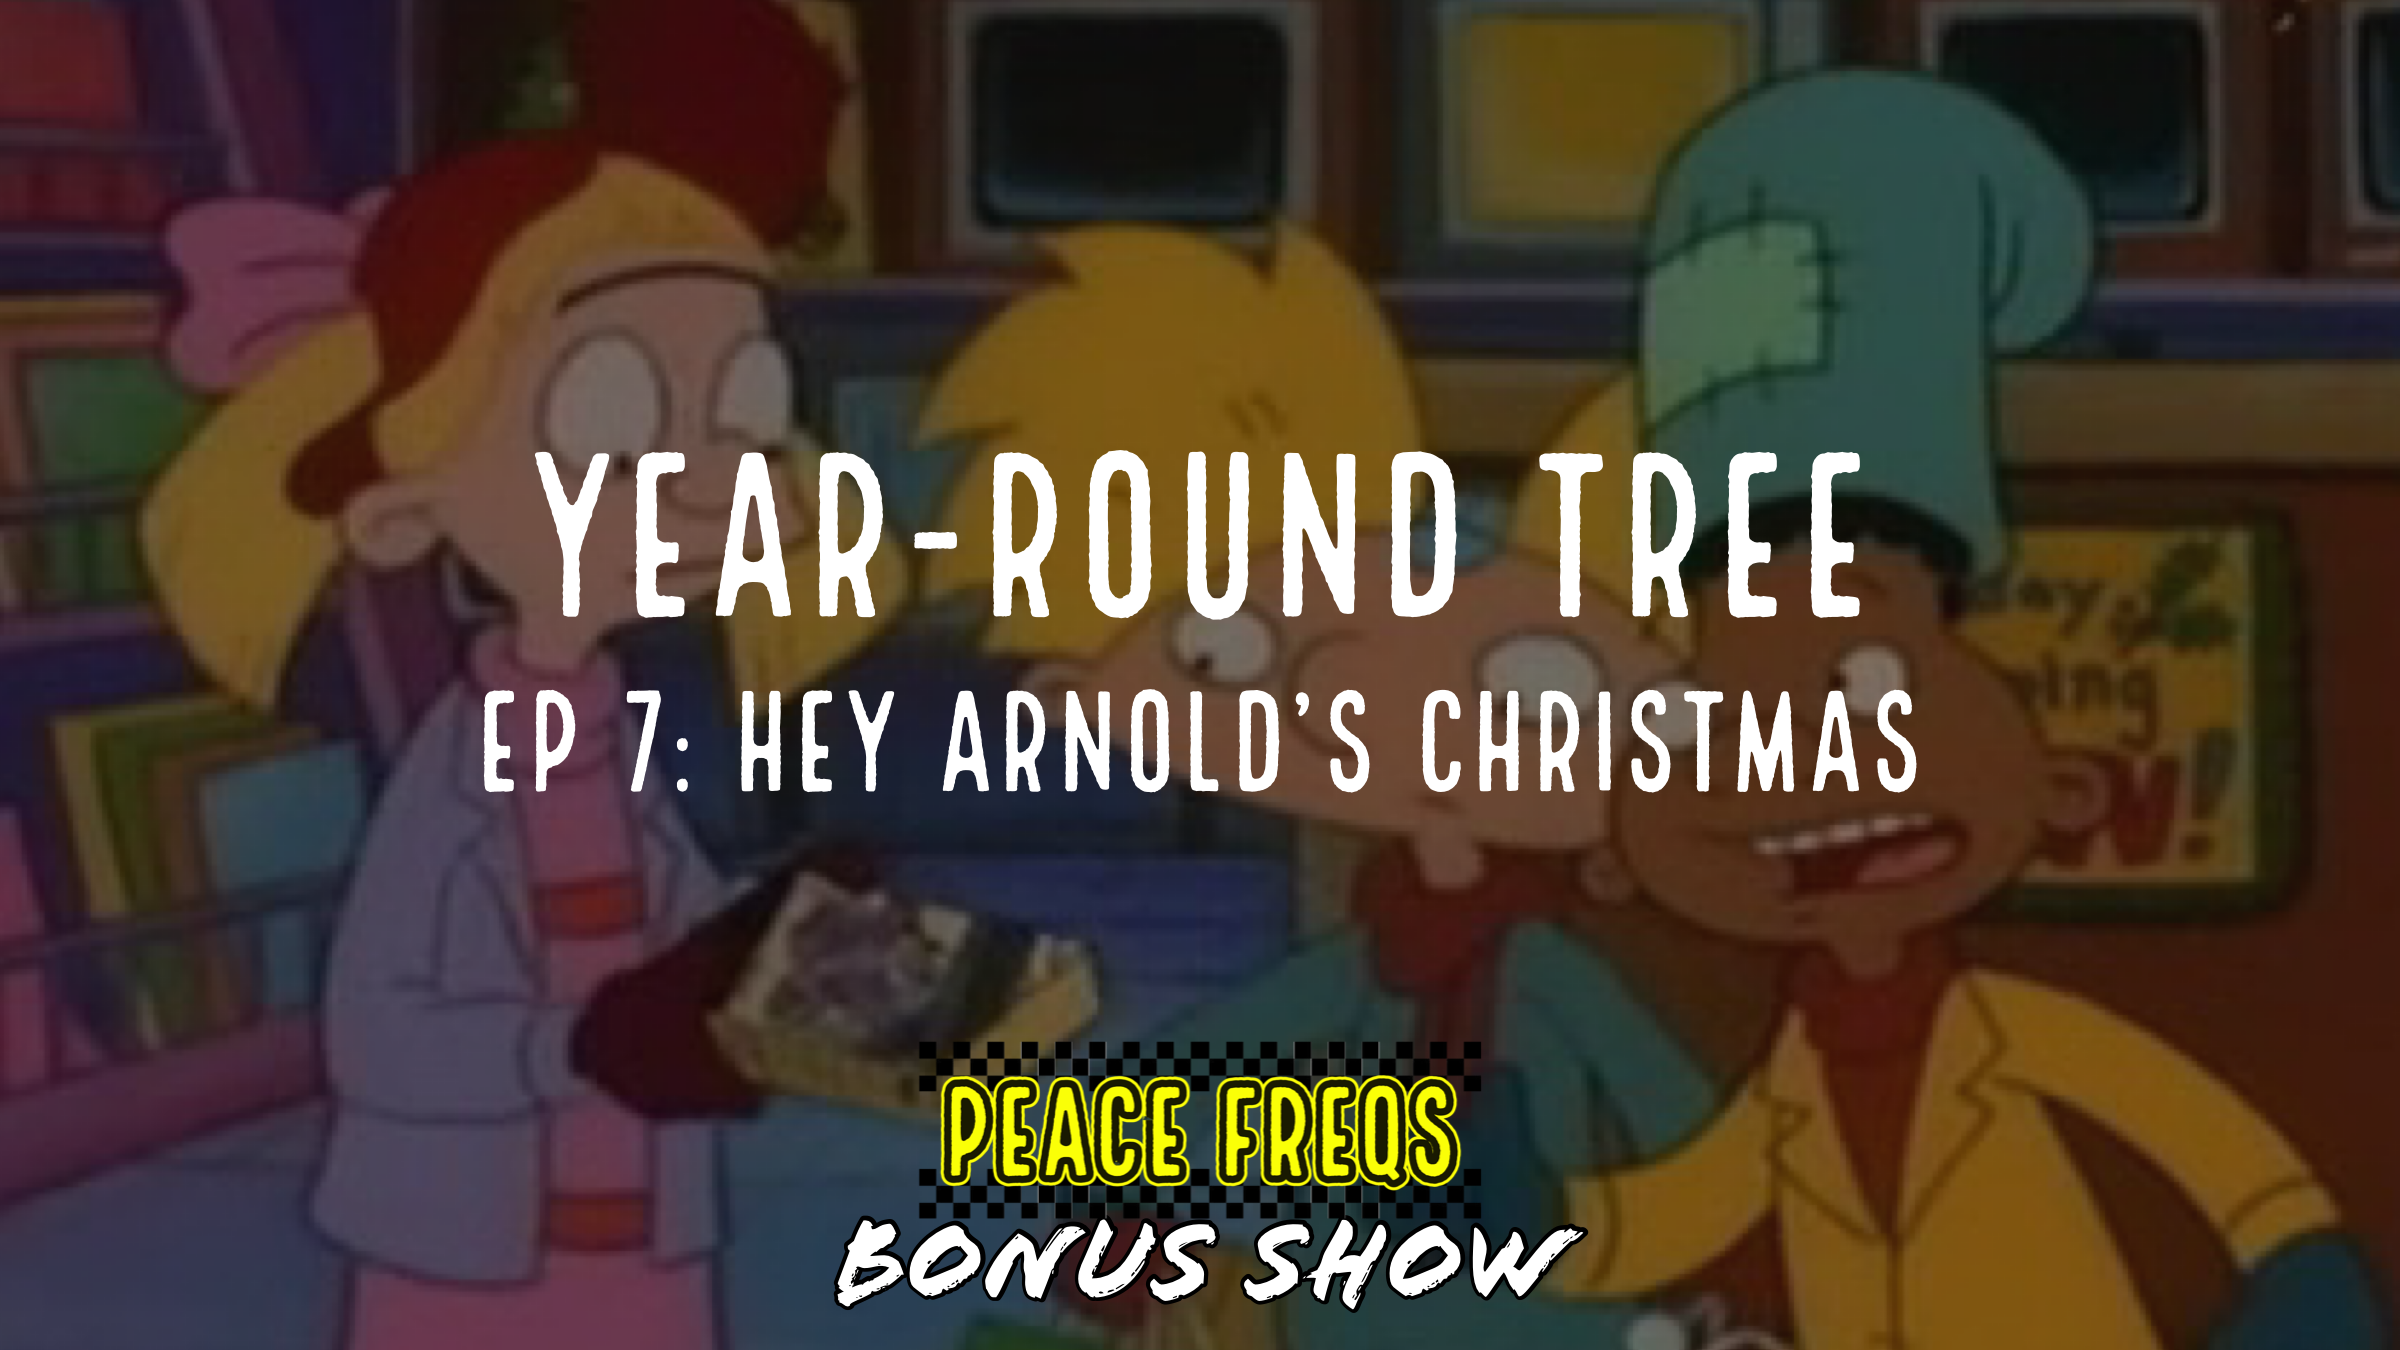 Hey Arnold's Christmas Review - Year-Round Tree 007 Title Card